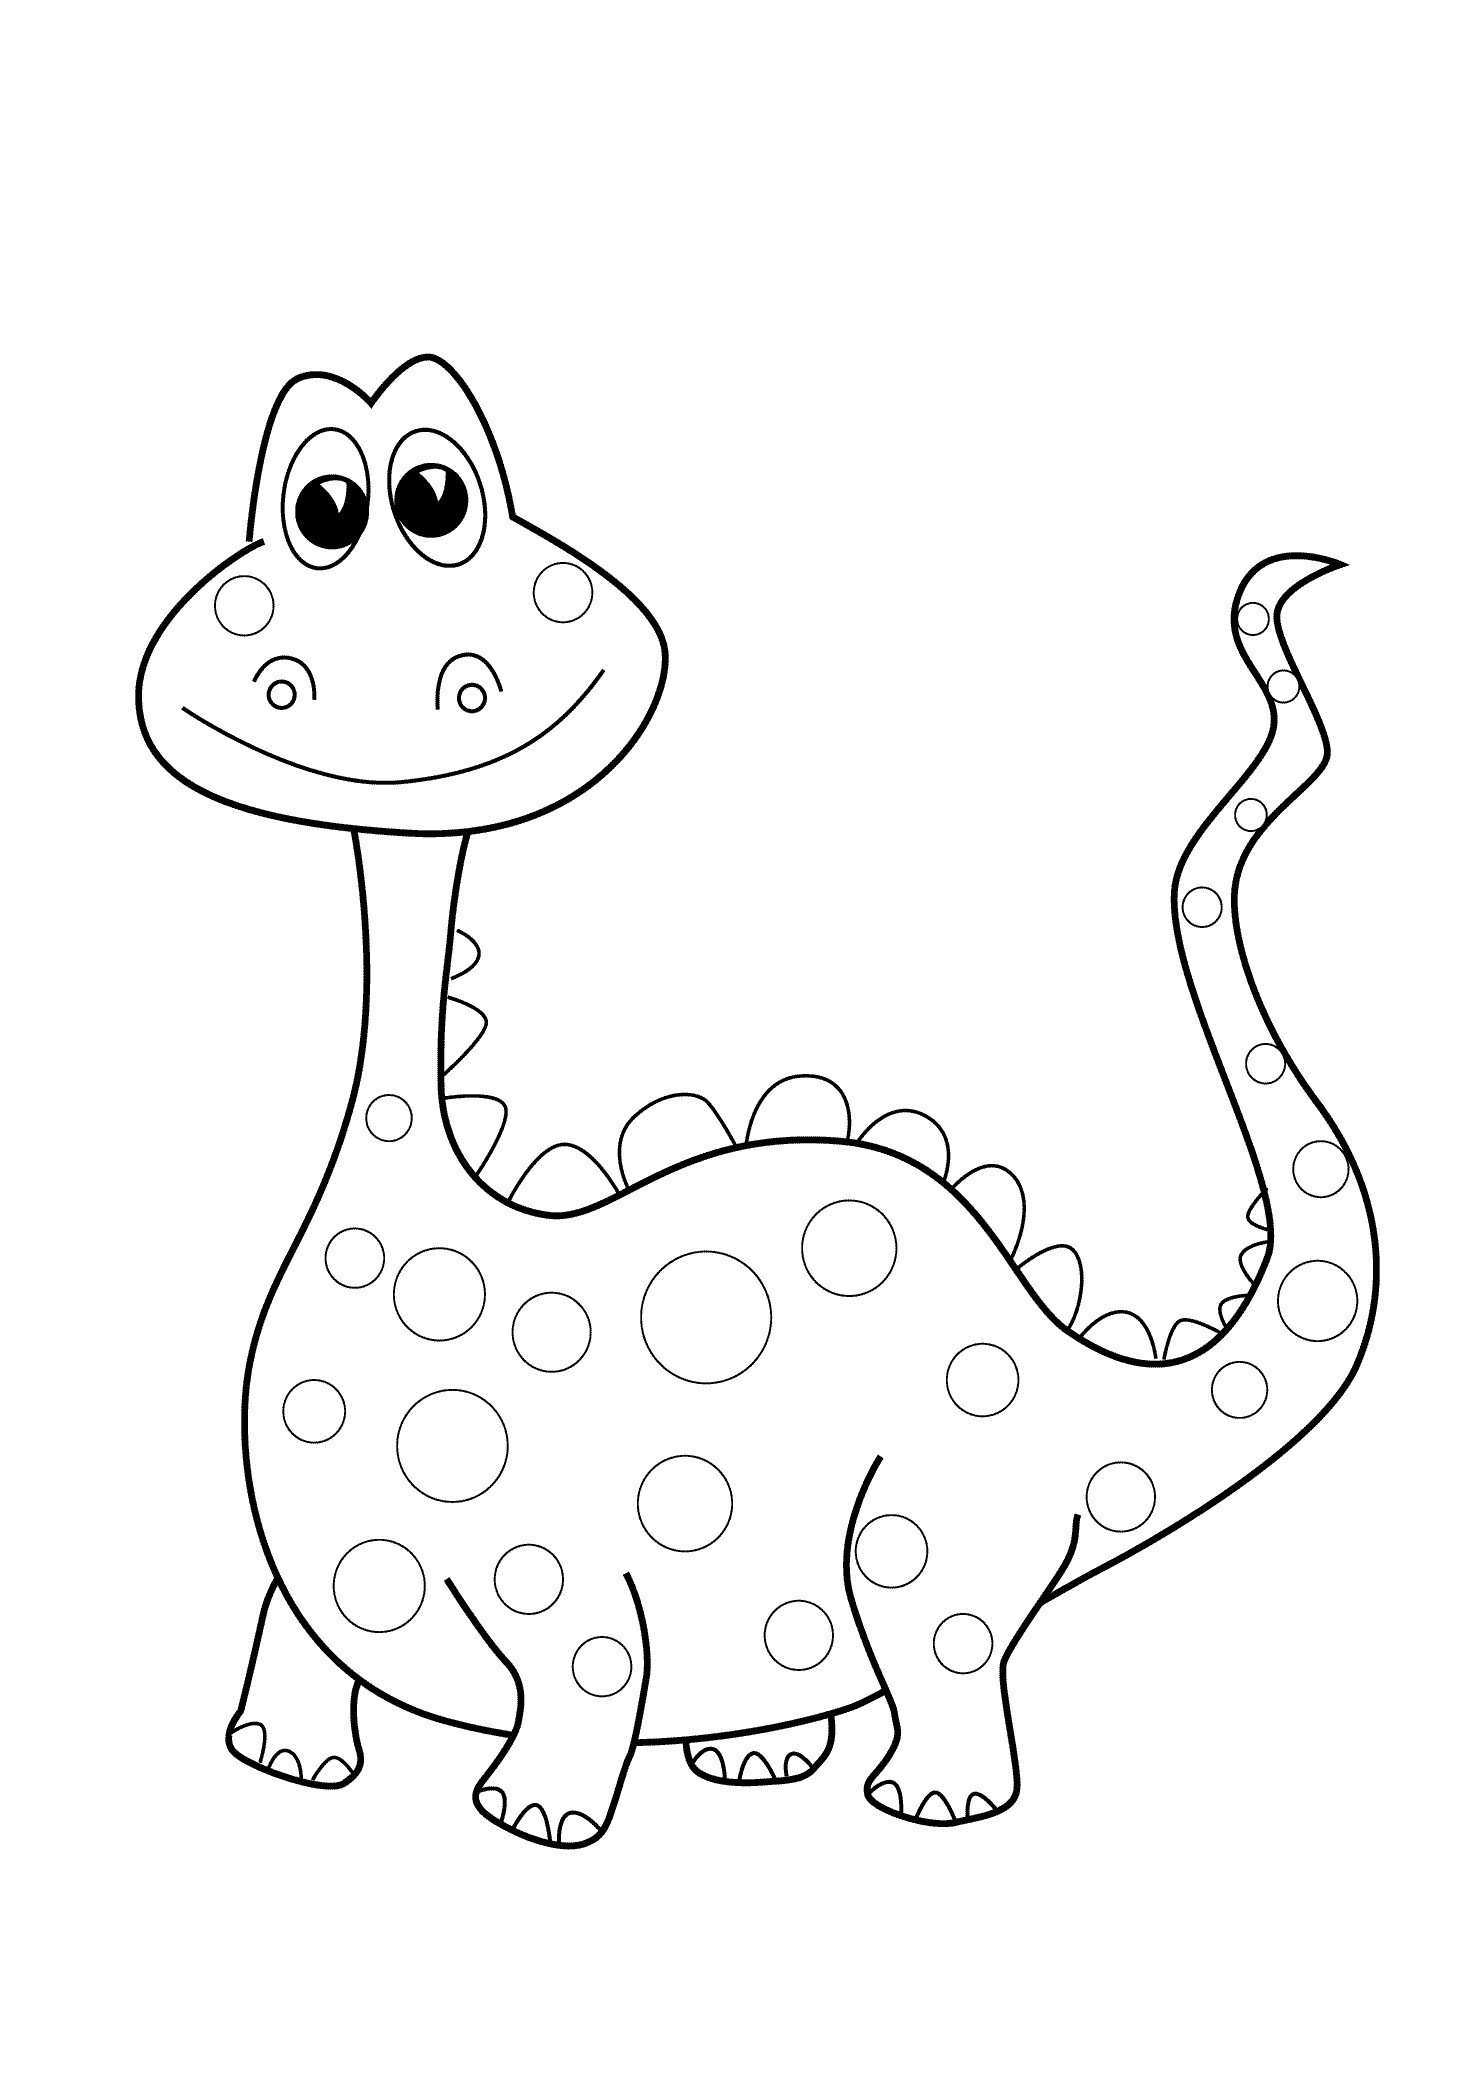 Dinosaur Worksheets Kindergarten Easy Coloring Pages for Preschoolers Haramiran Preschool